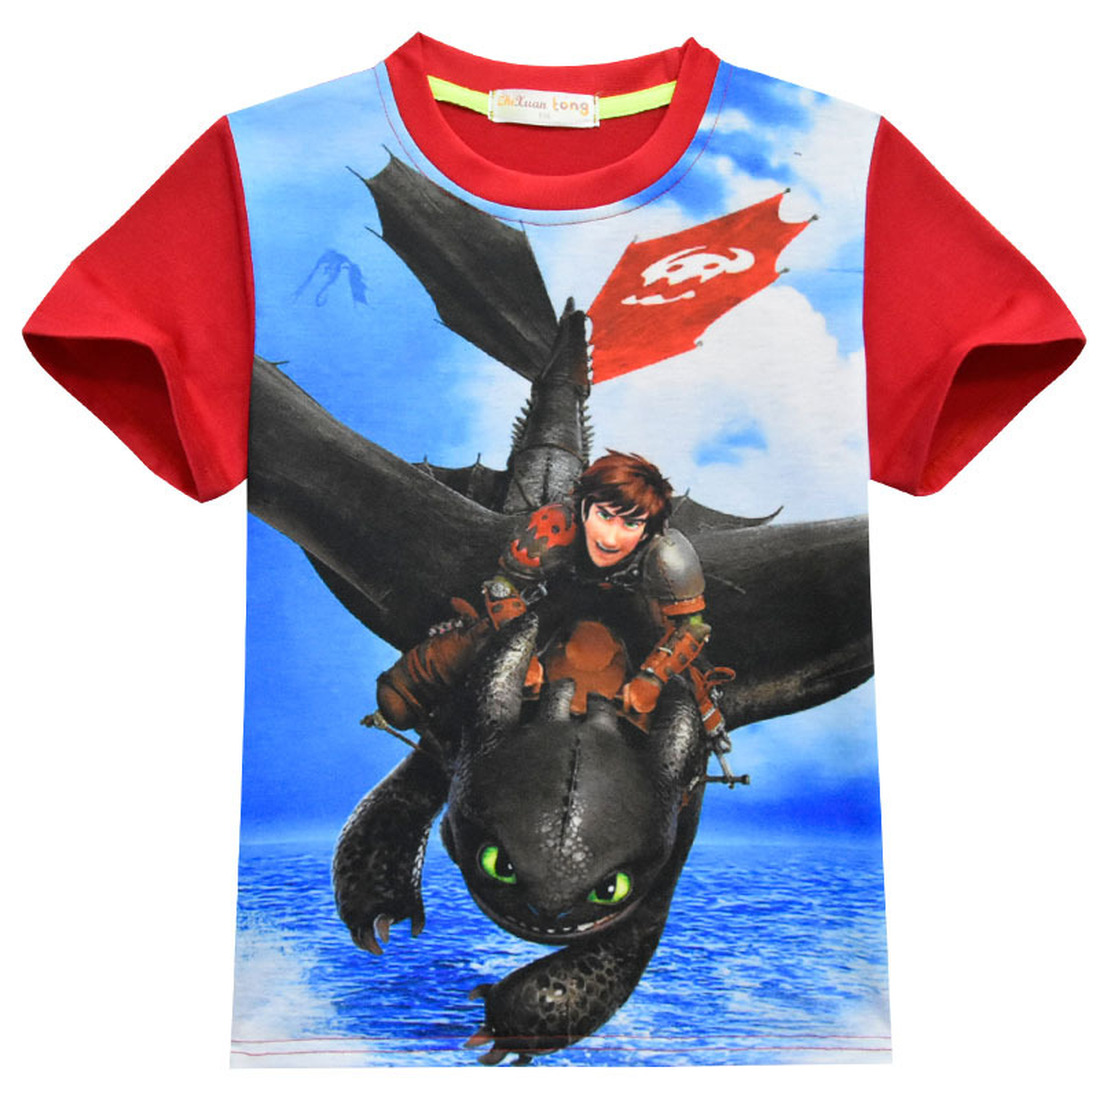 New How to Train Your Dragon 3 Kids T Shirt Night Fury Toothless Cosplay Costume 3D Printed Arrival Baby Boys Casual Tee Top